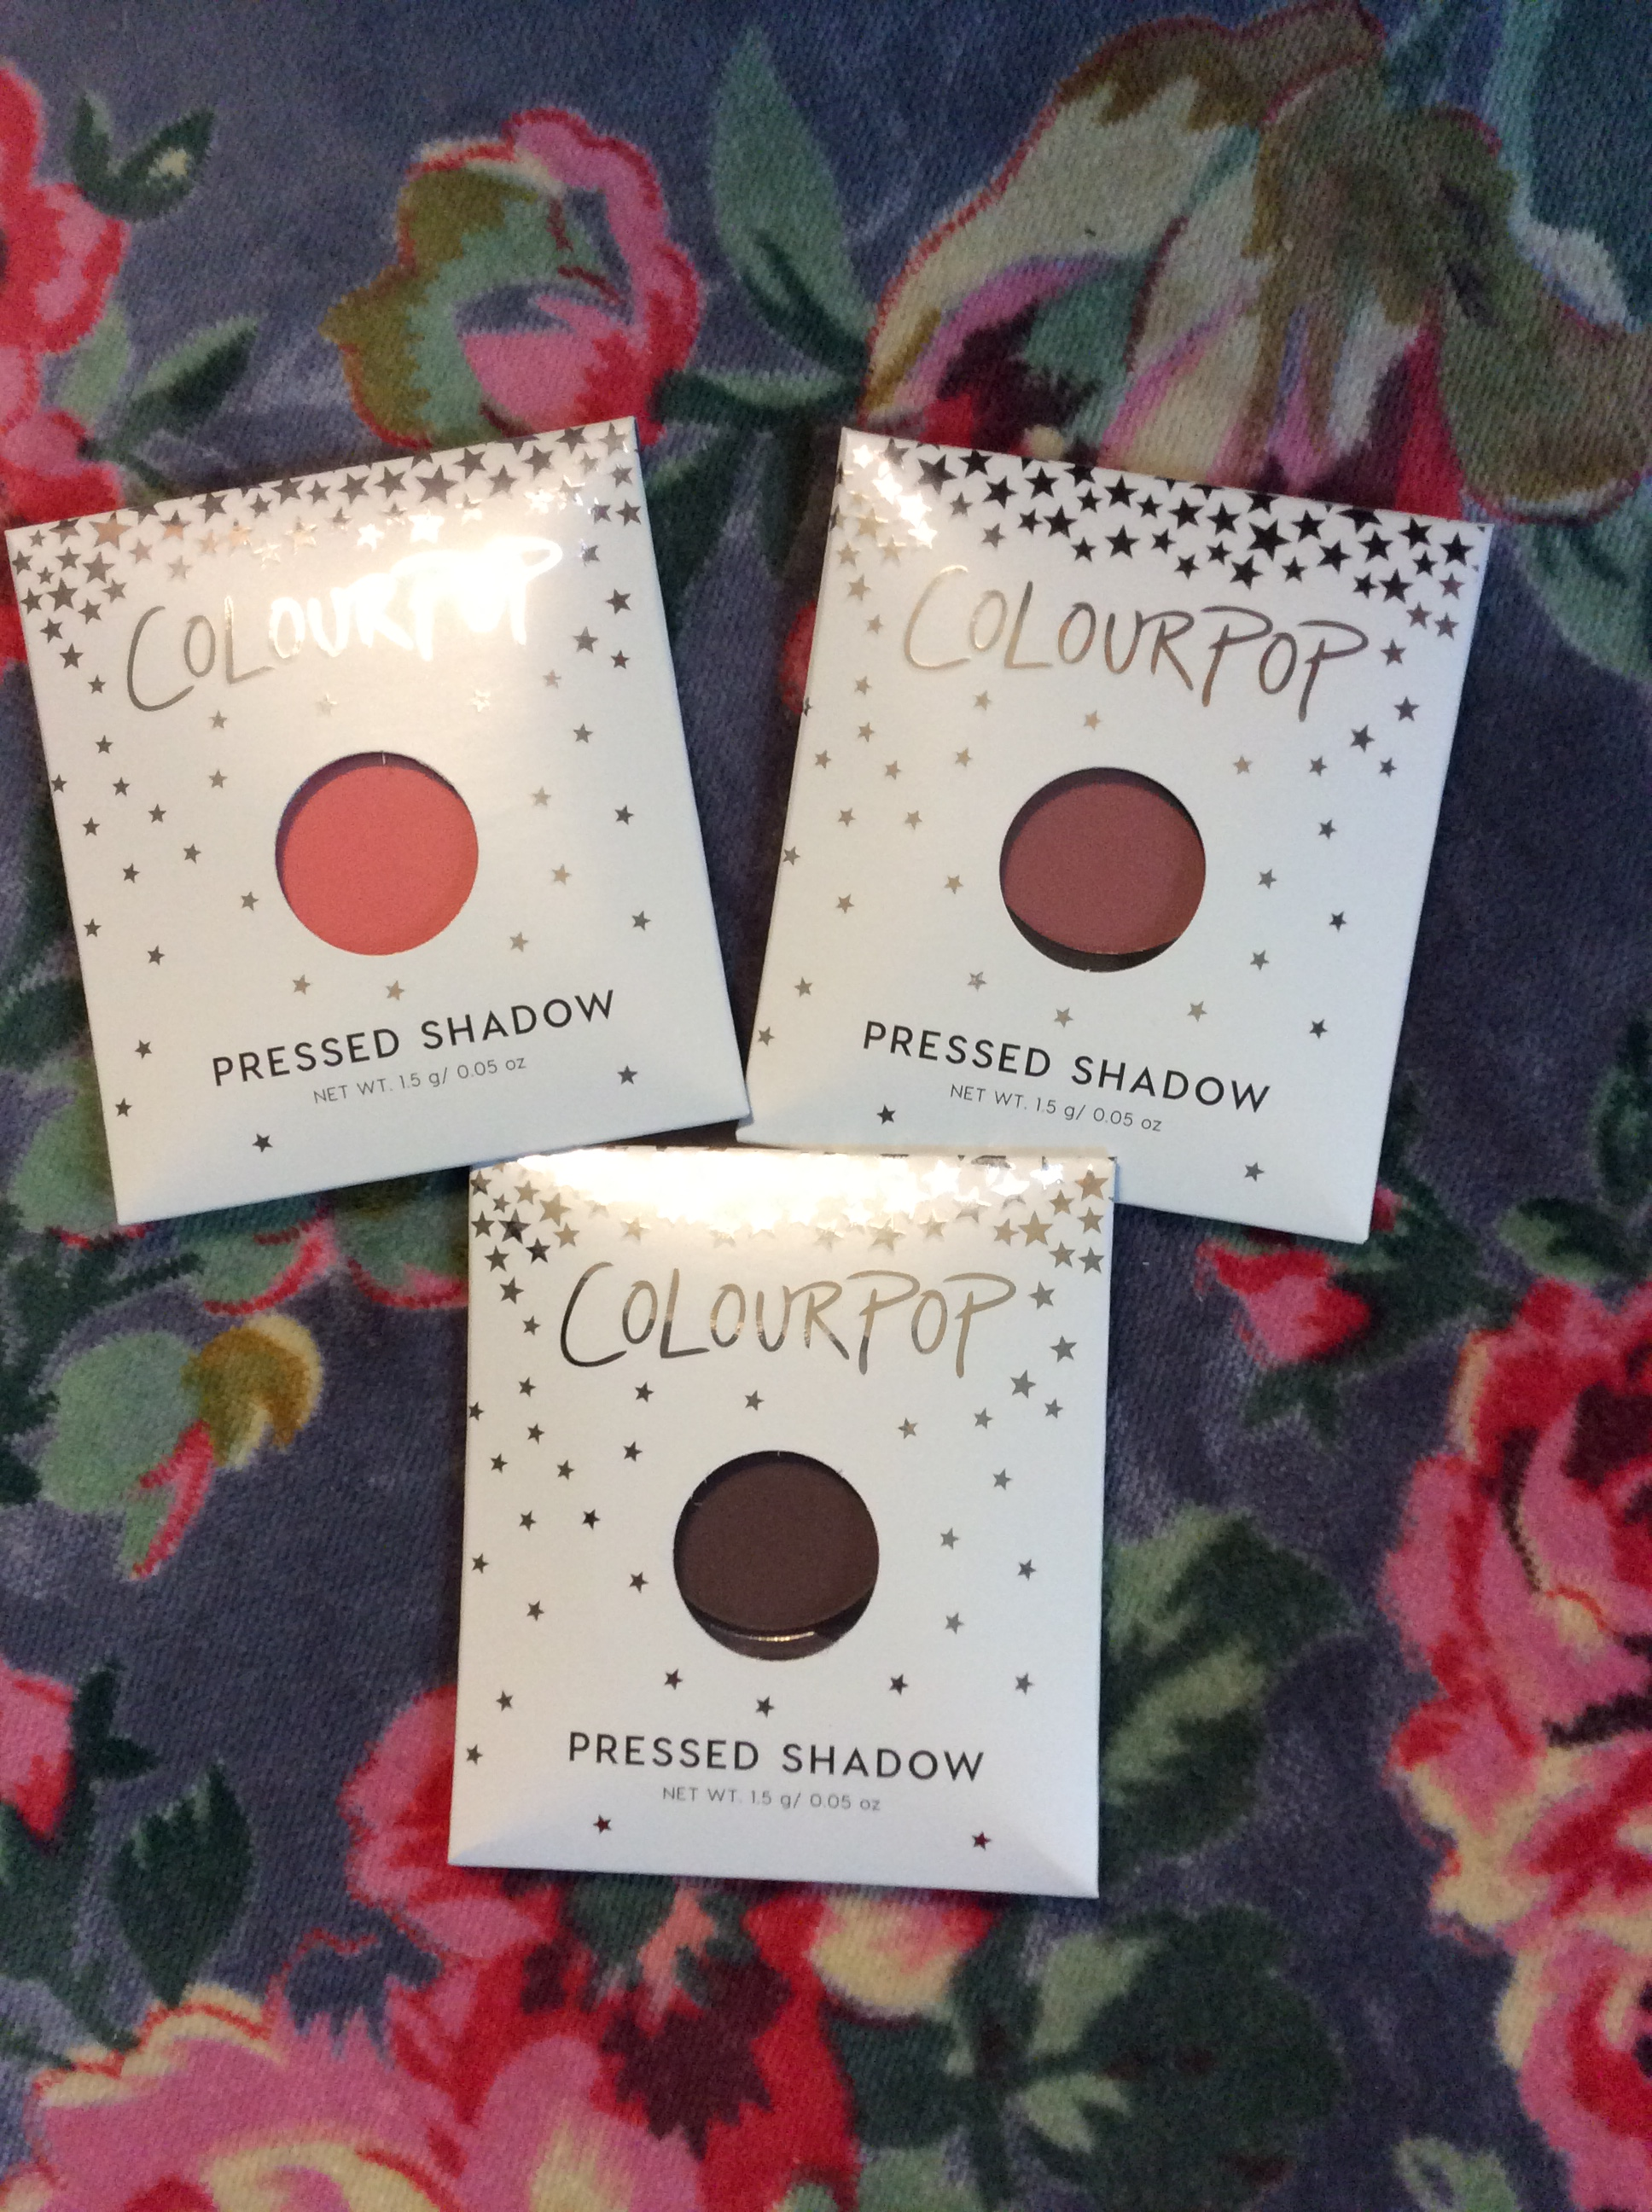 Colourpop Pressed Shadows and more